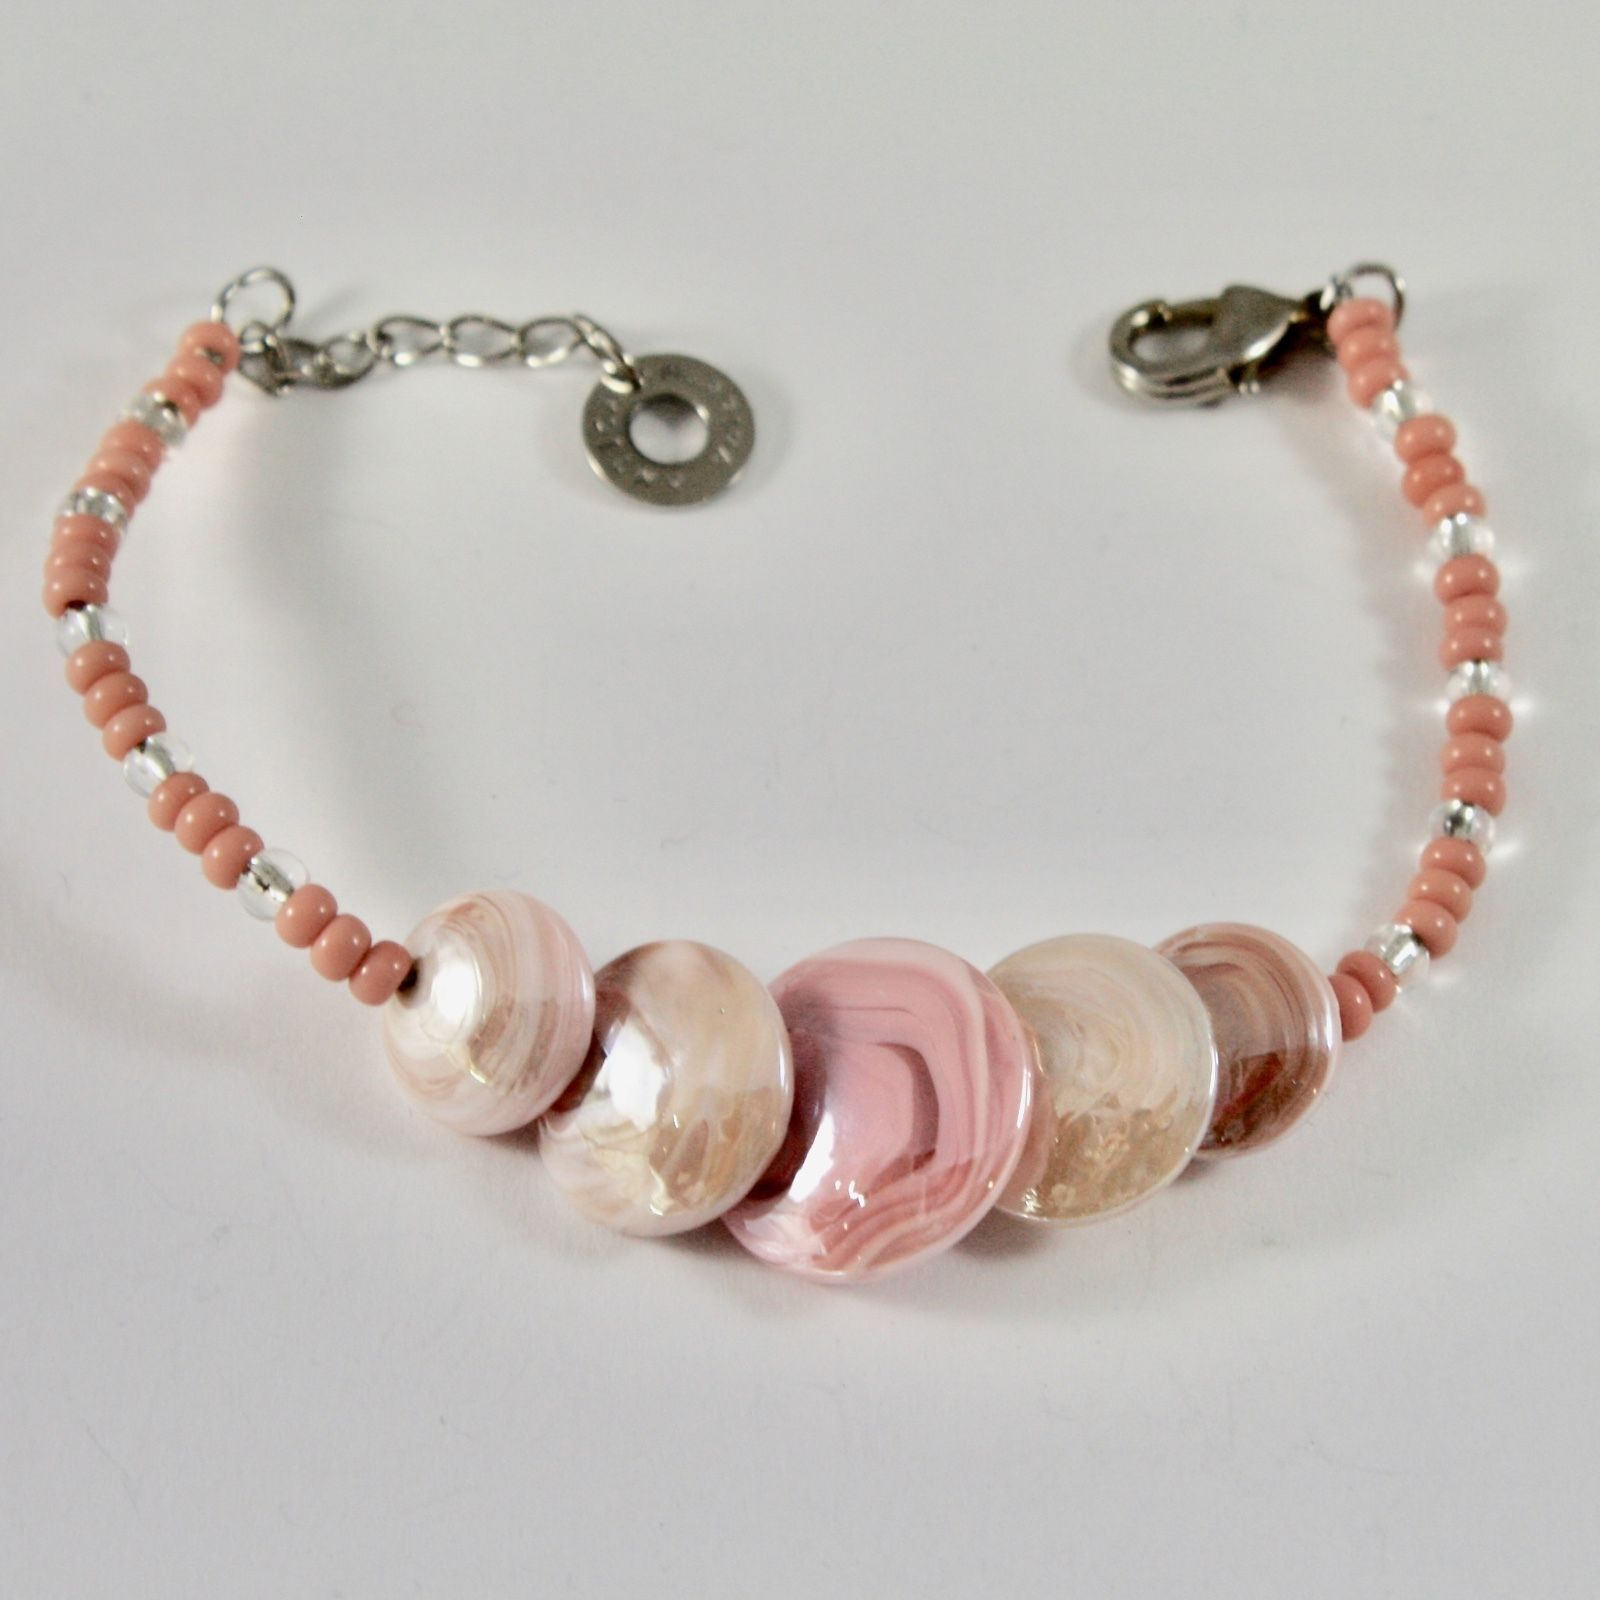 ANTICA MURRINA VENEZIA BRACELET WITH BIG PINK MURANO GLASS DISCS, SIZABLE